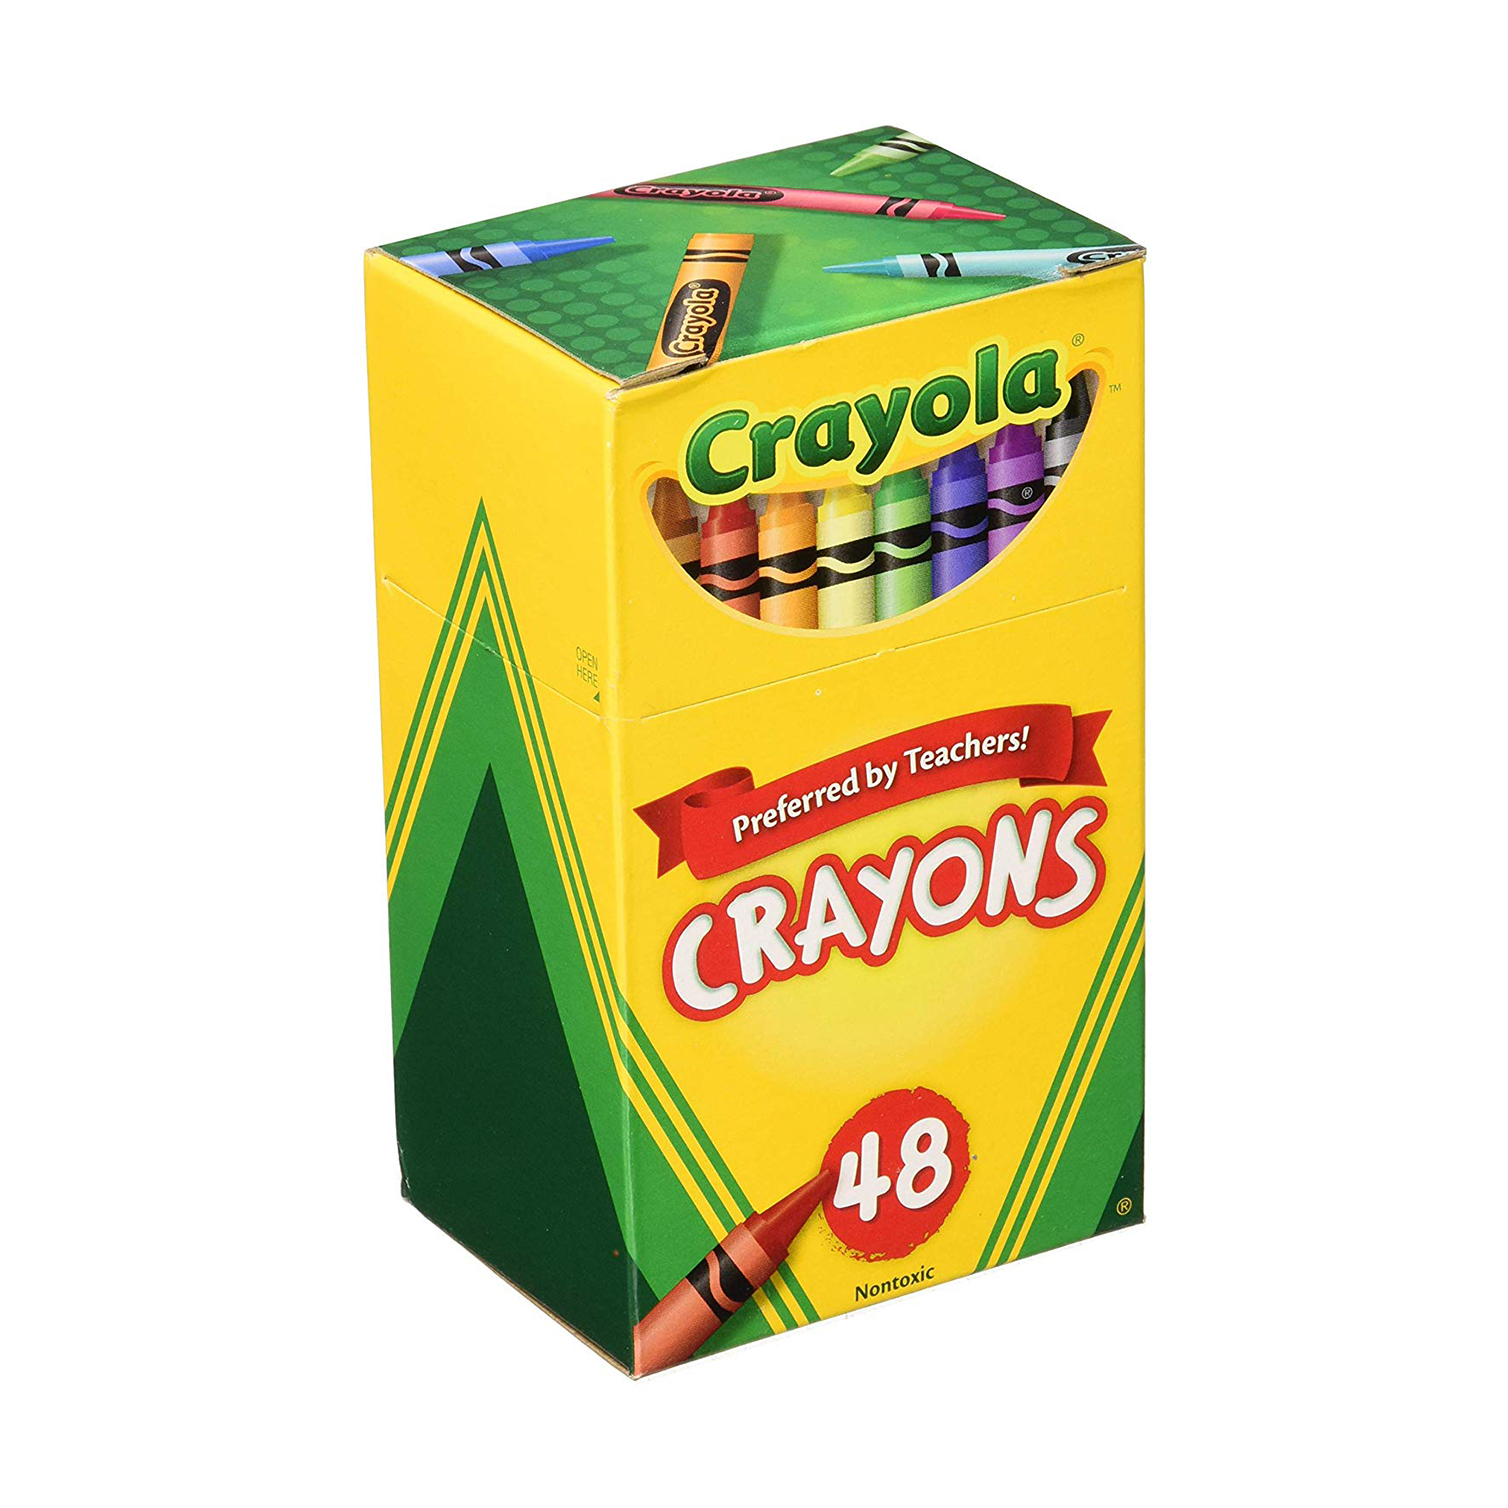 You can never have too many crayons when you're teaching your toddler numbers